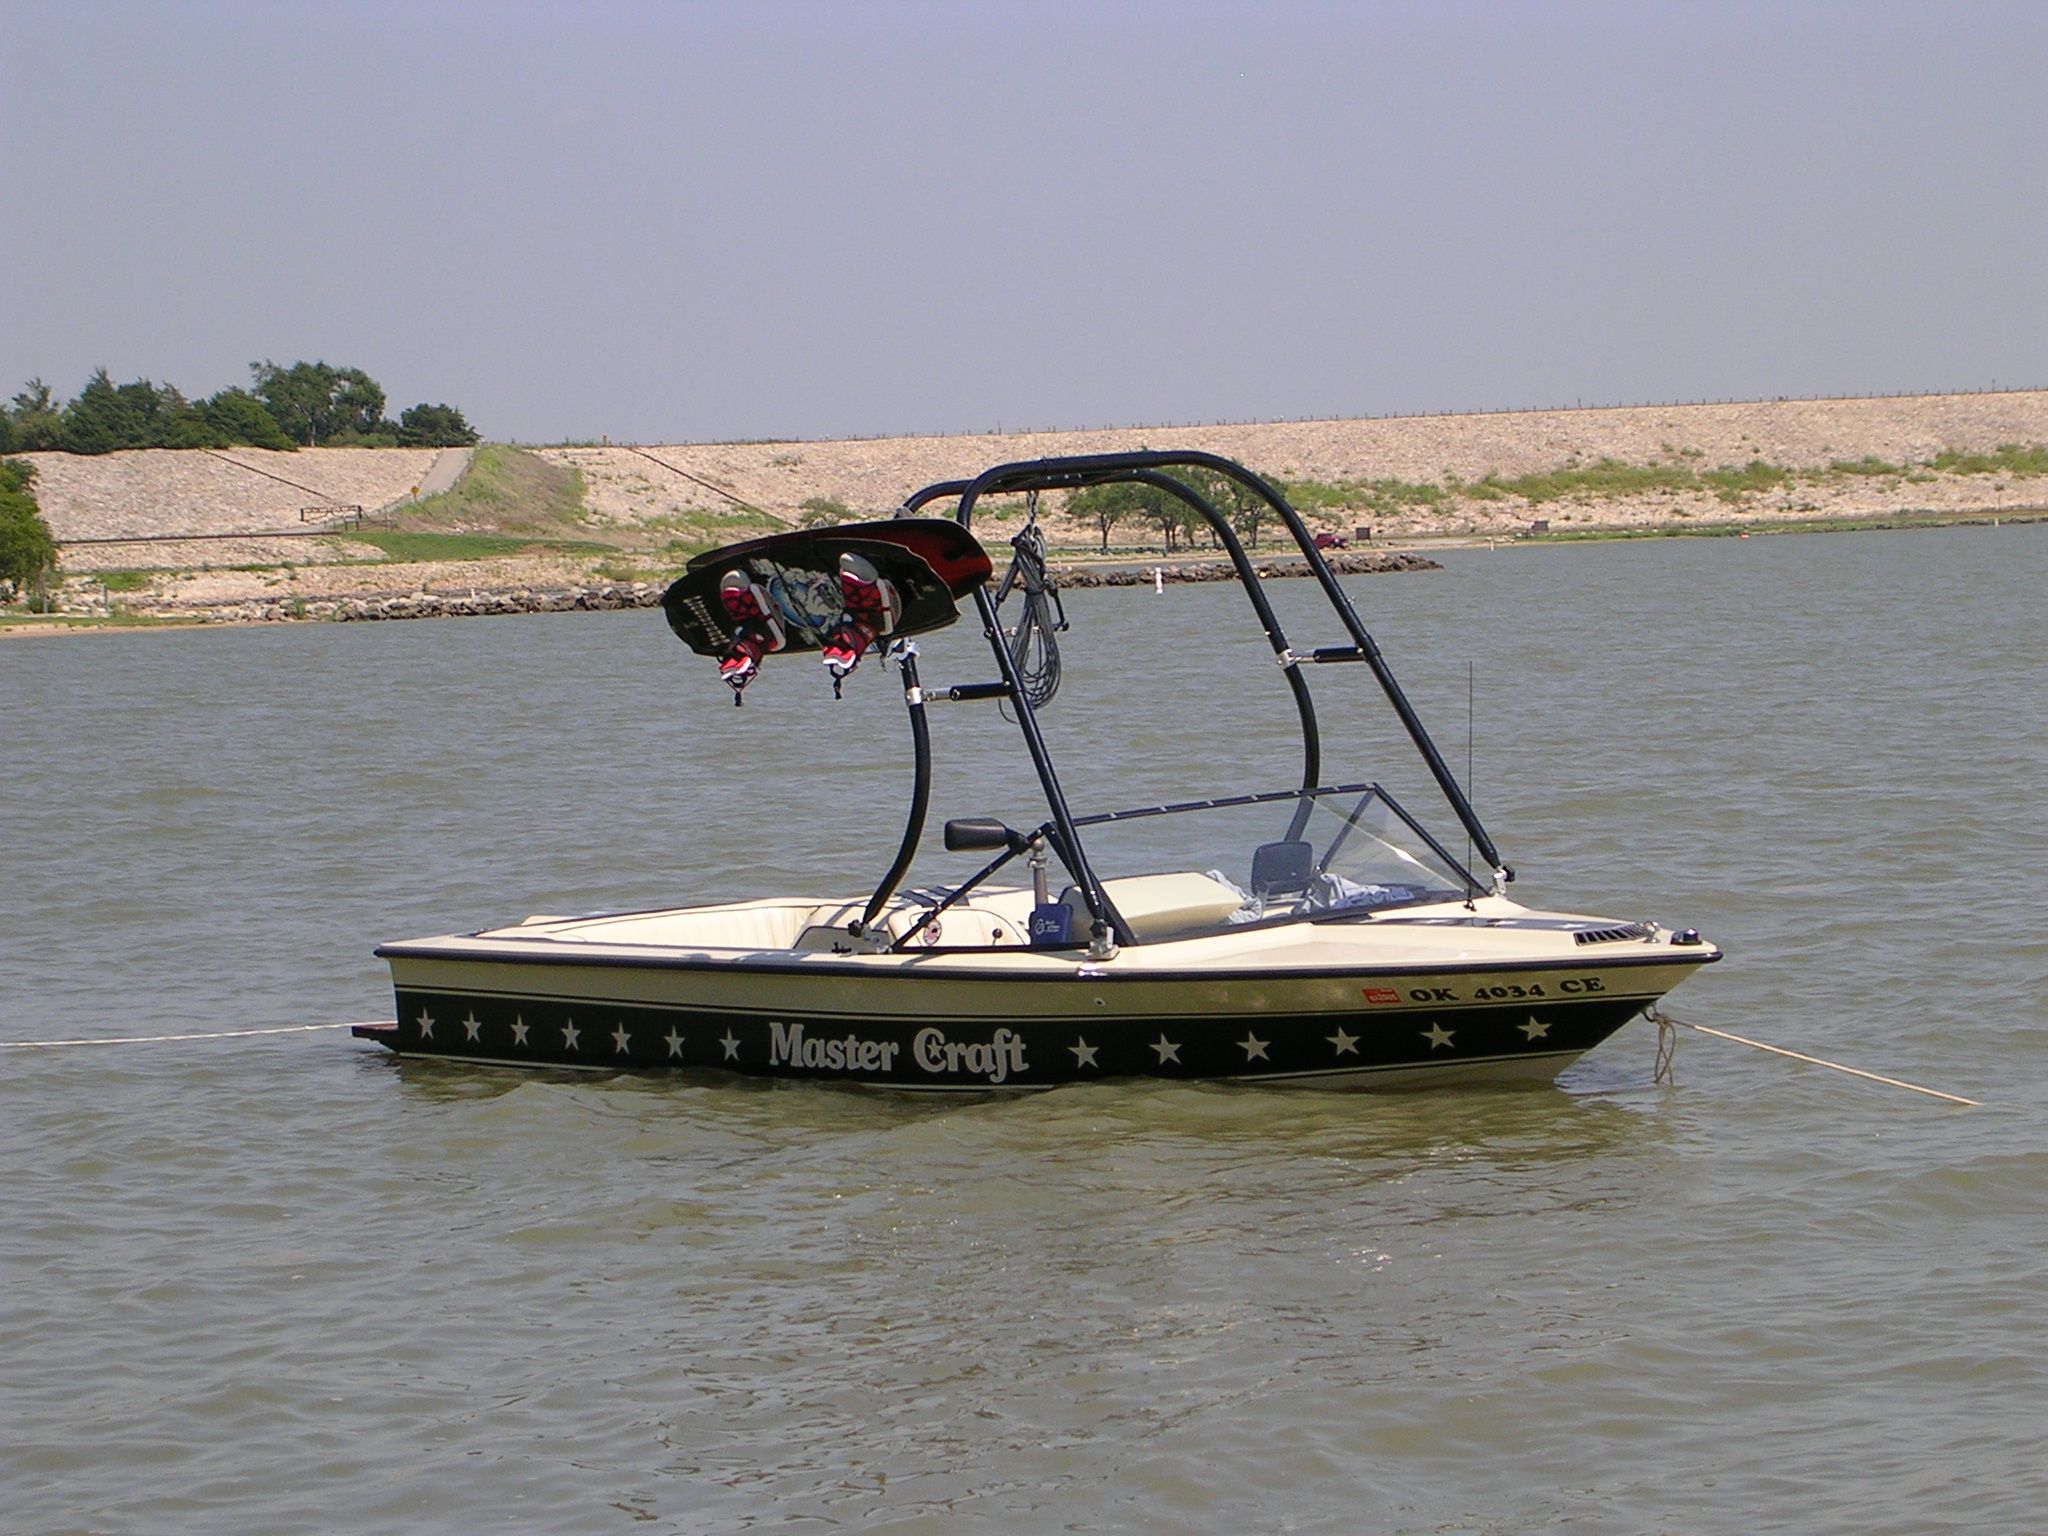 Big Air H2o Wakeboard Tower On A Mastercraft Stars And Stripes Boat Wakeboarding Boat Mastercraft Ski Boats